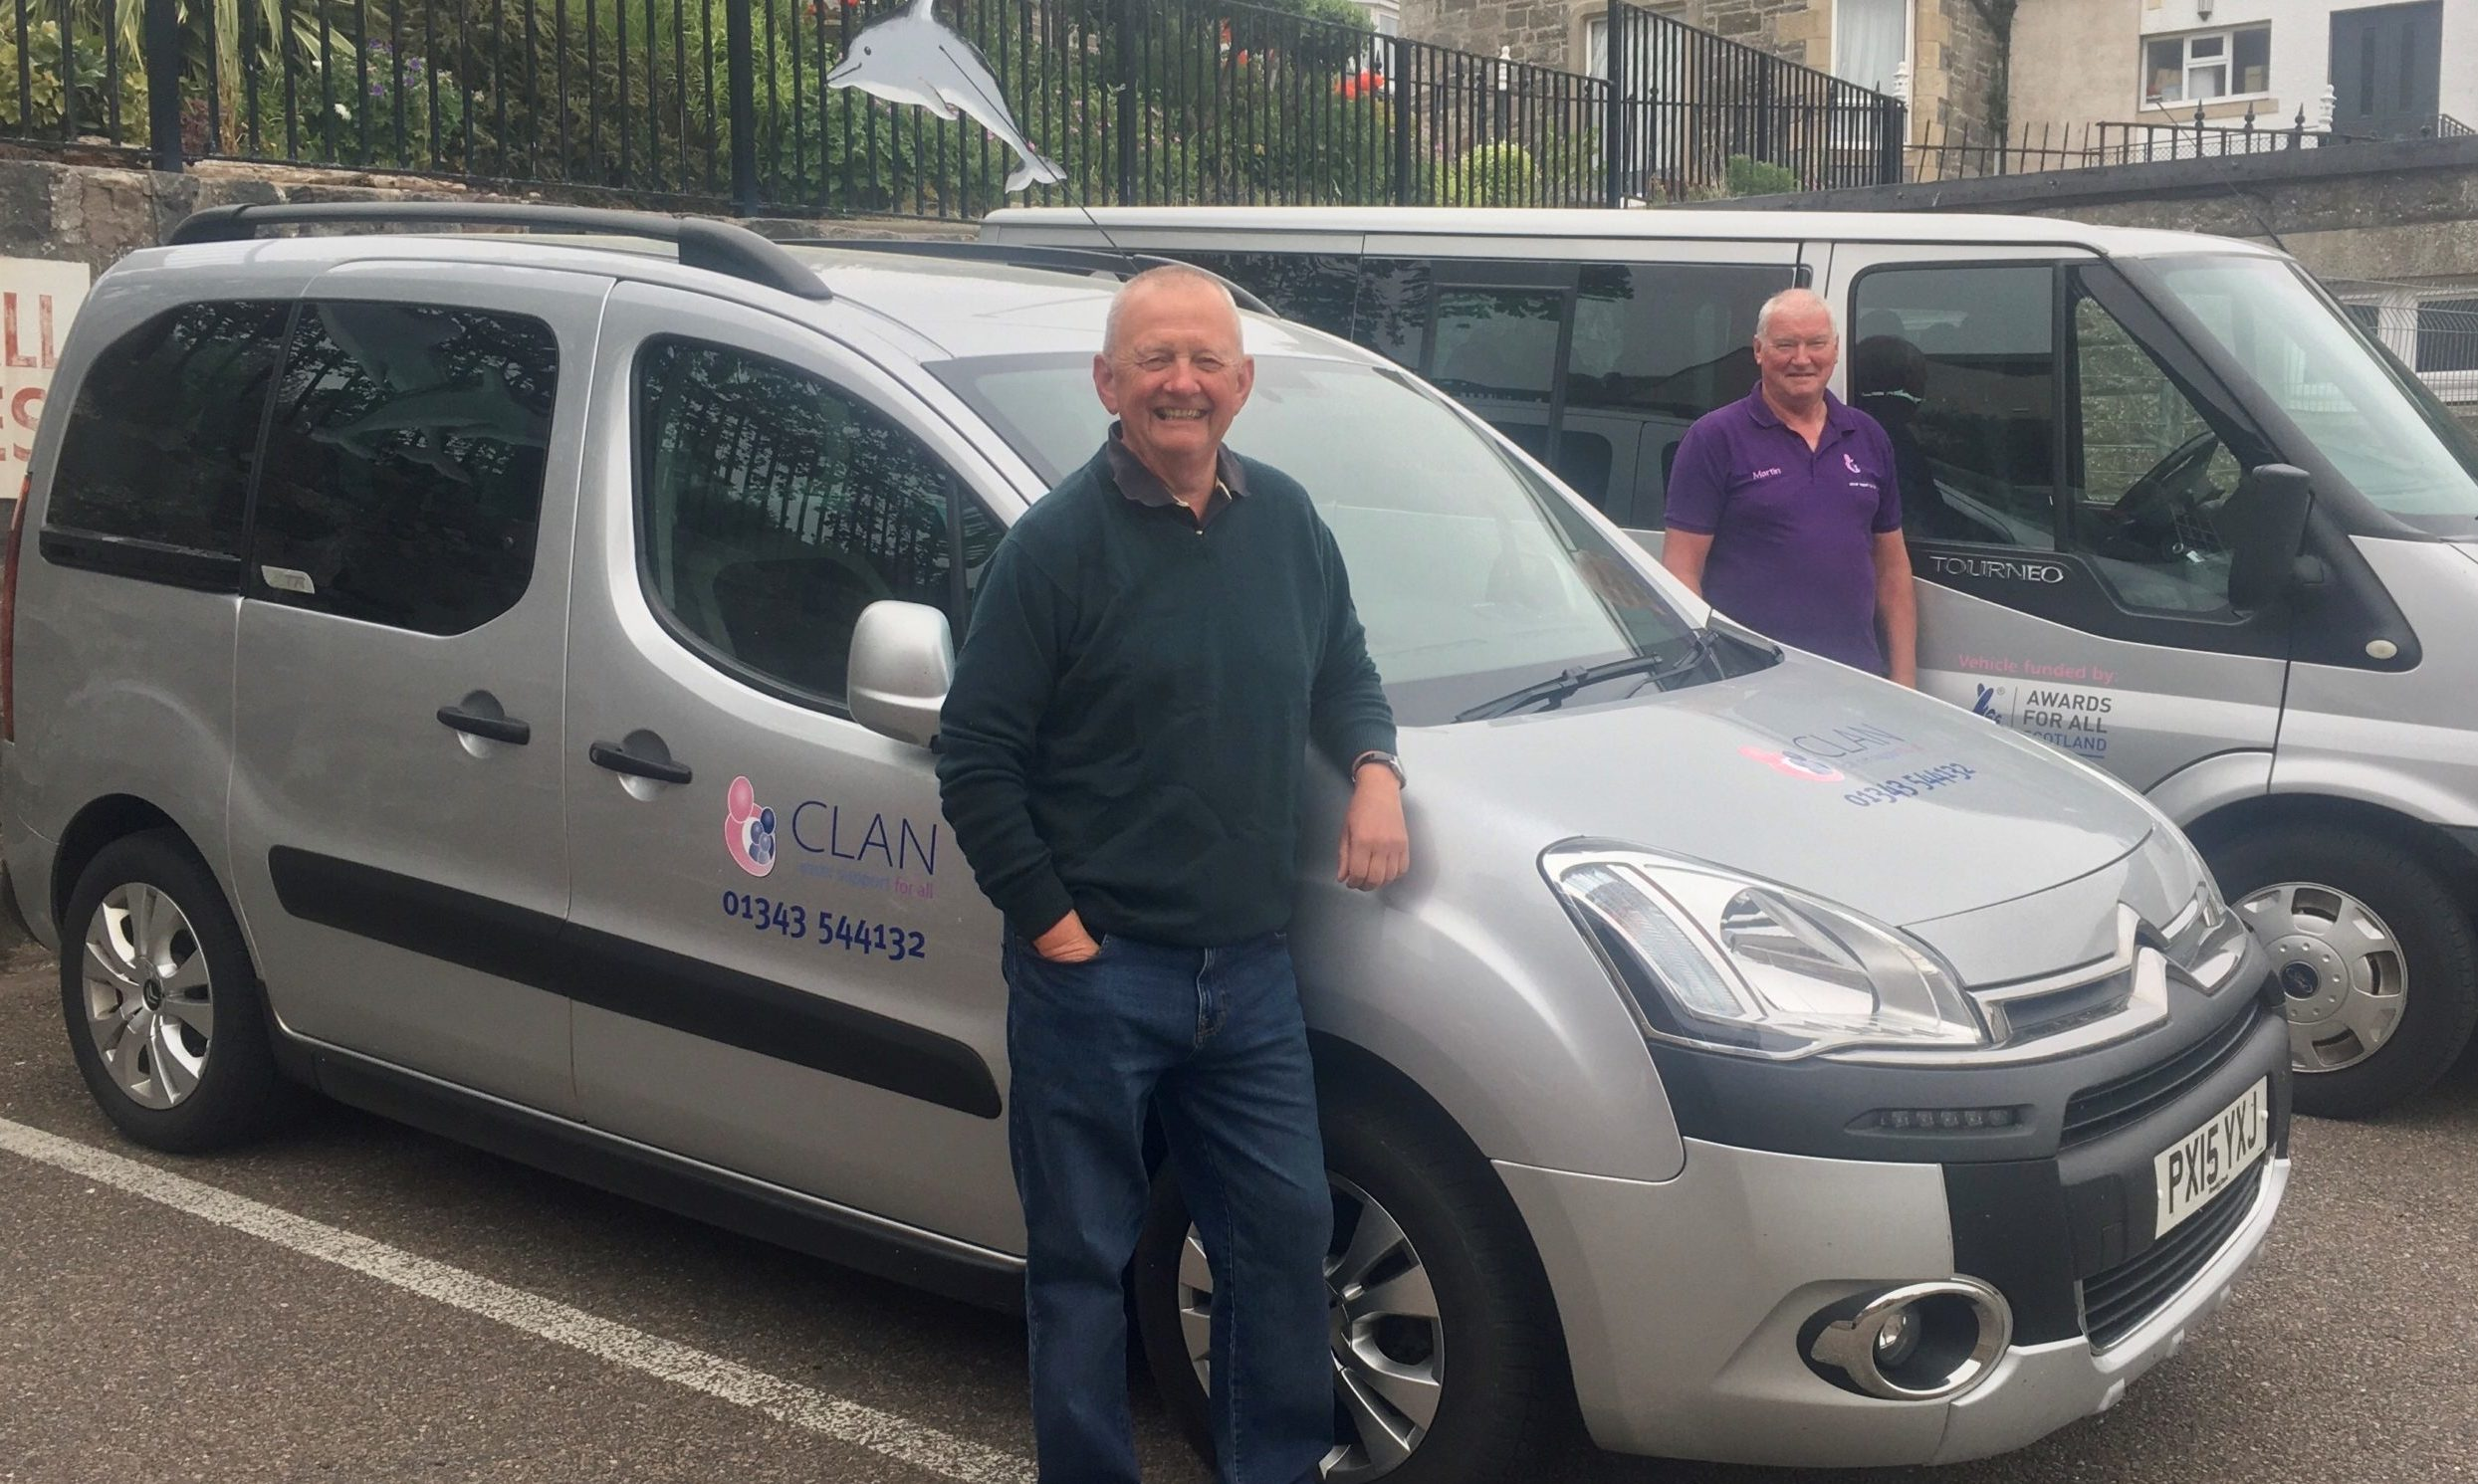 Volunteer drivers David Paterson and Martin Douglas are helping to take people to their appointments.